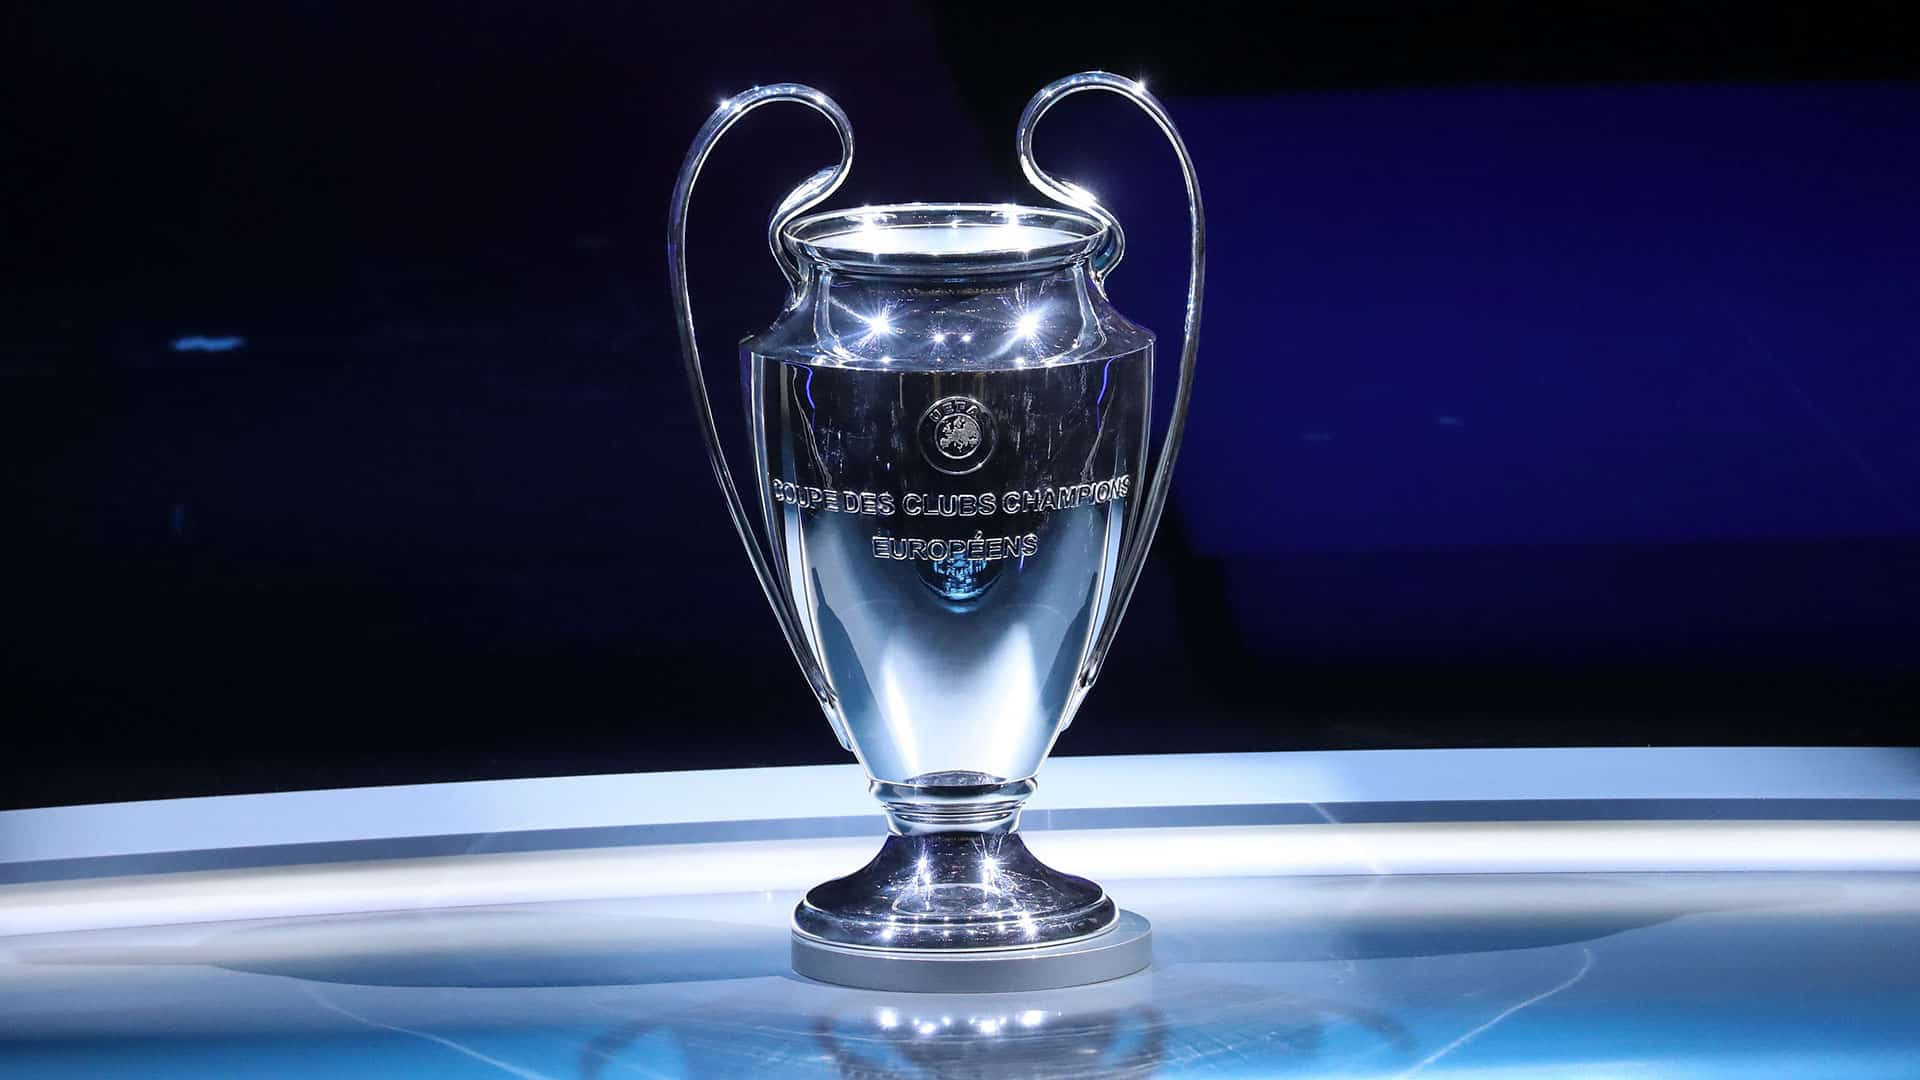 14/04/2021 Daily Predictions: Champions League – Liverpool vs Real Madrid